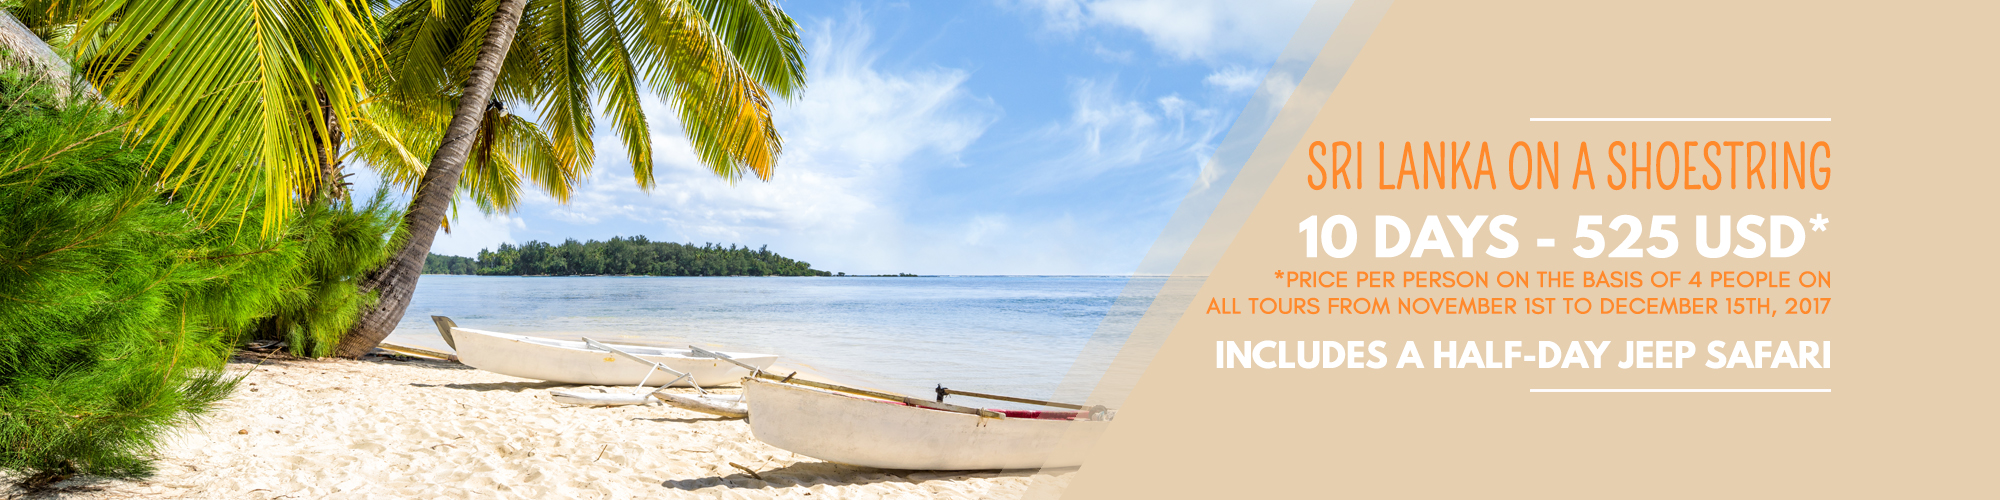 special offer sri lanka